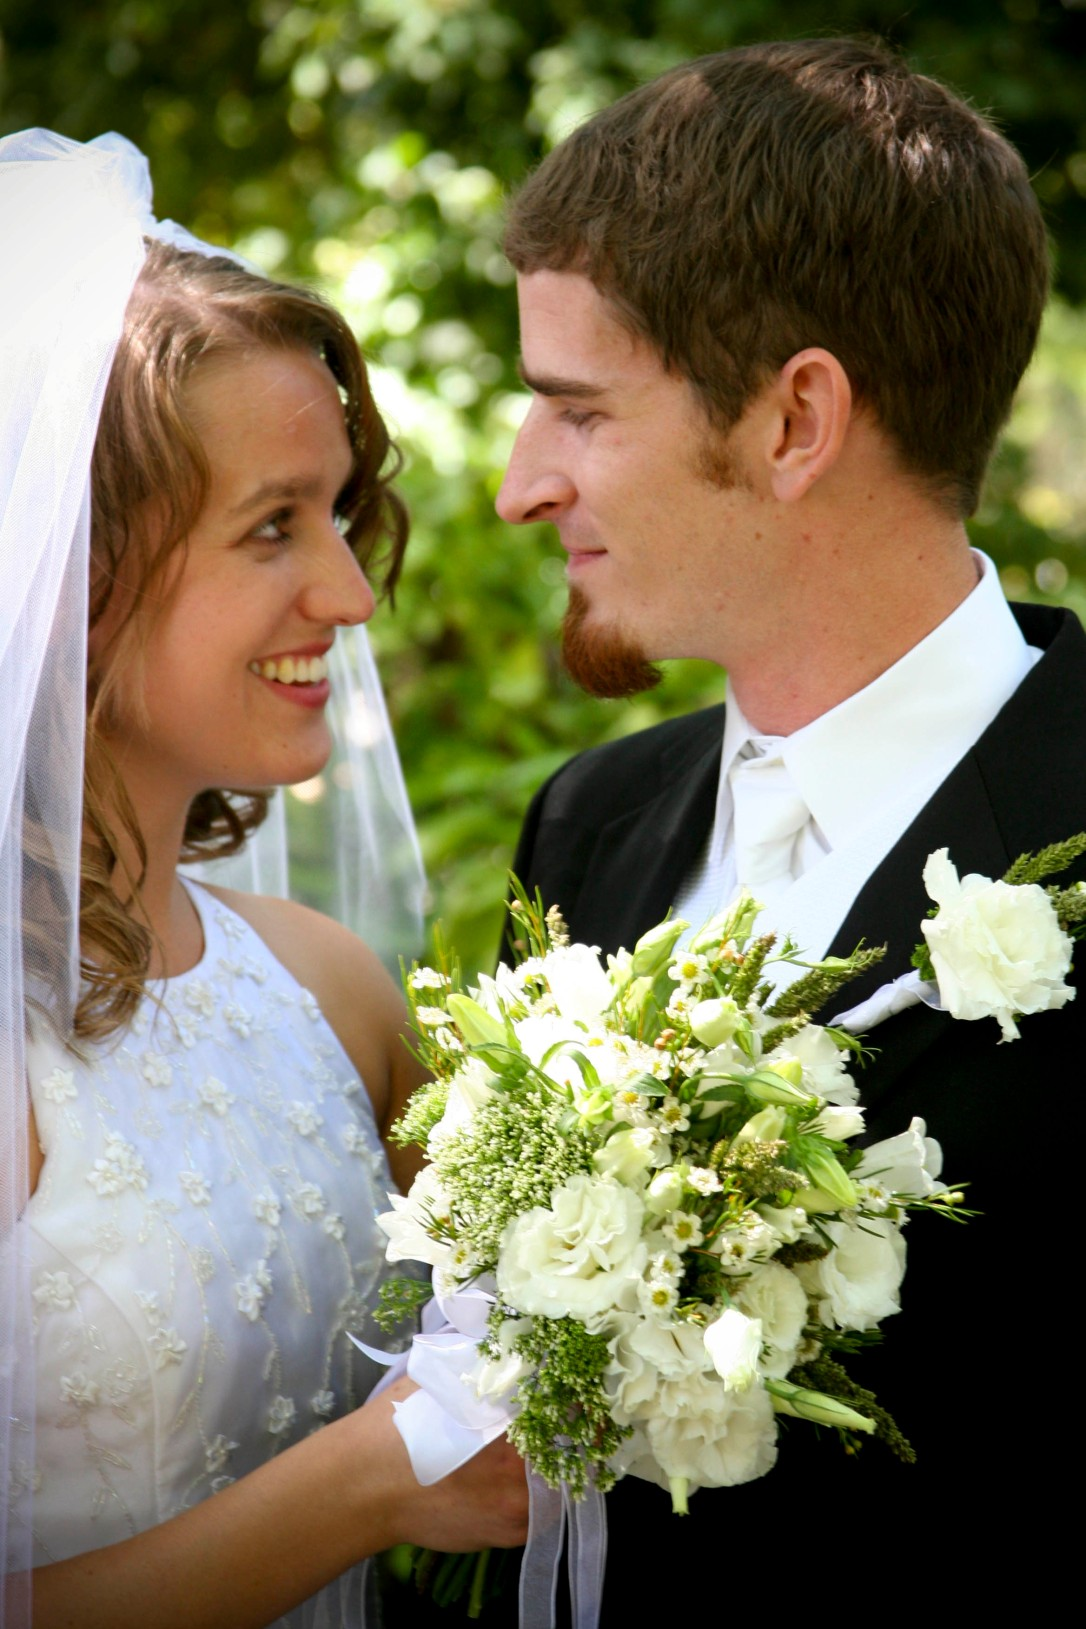 Josiah and Gina - Wedding Portrait with Lisianthus Bouquet